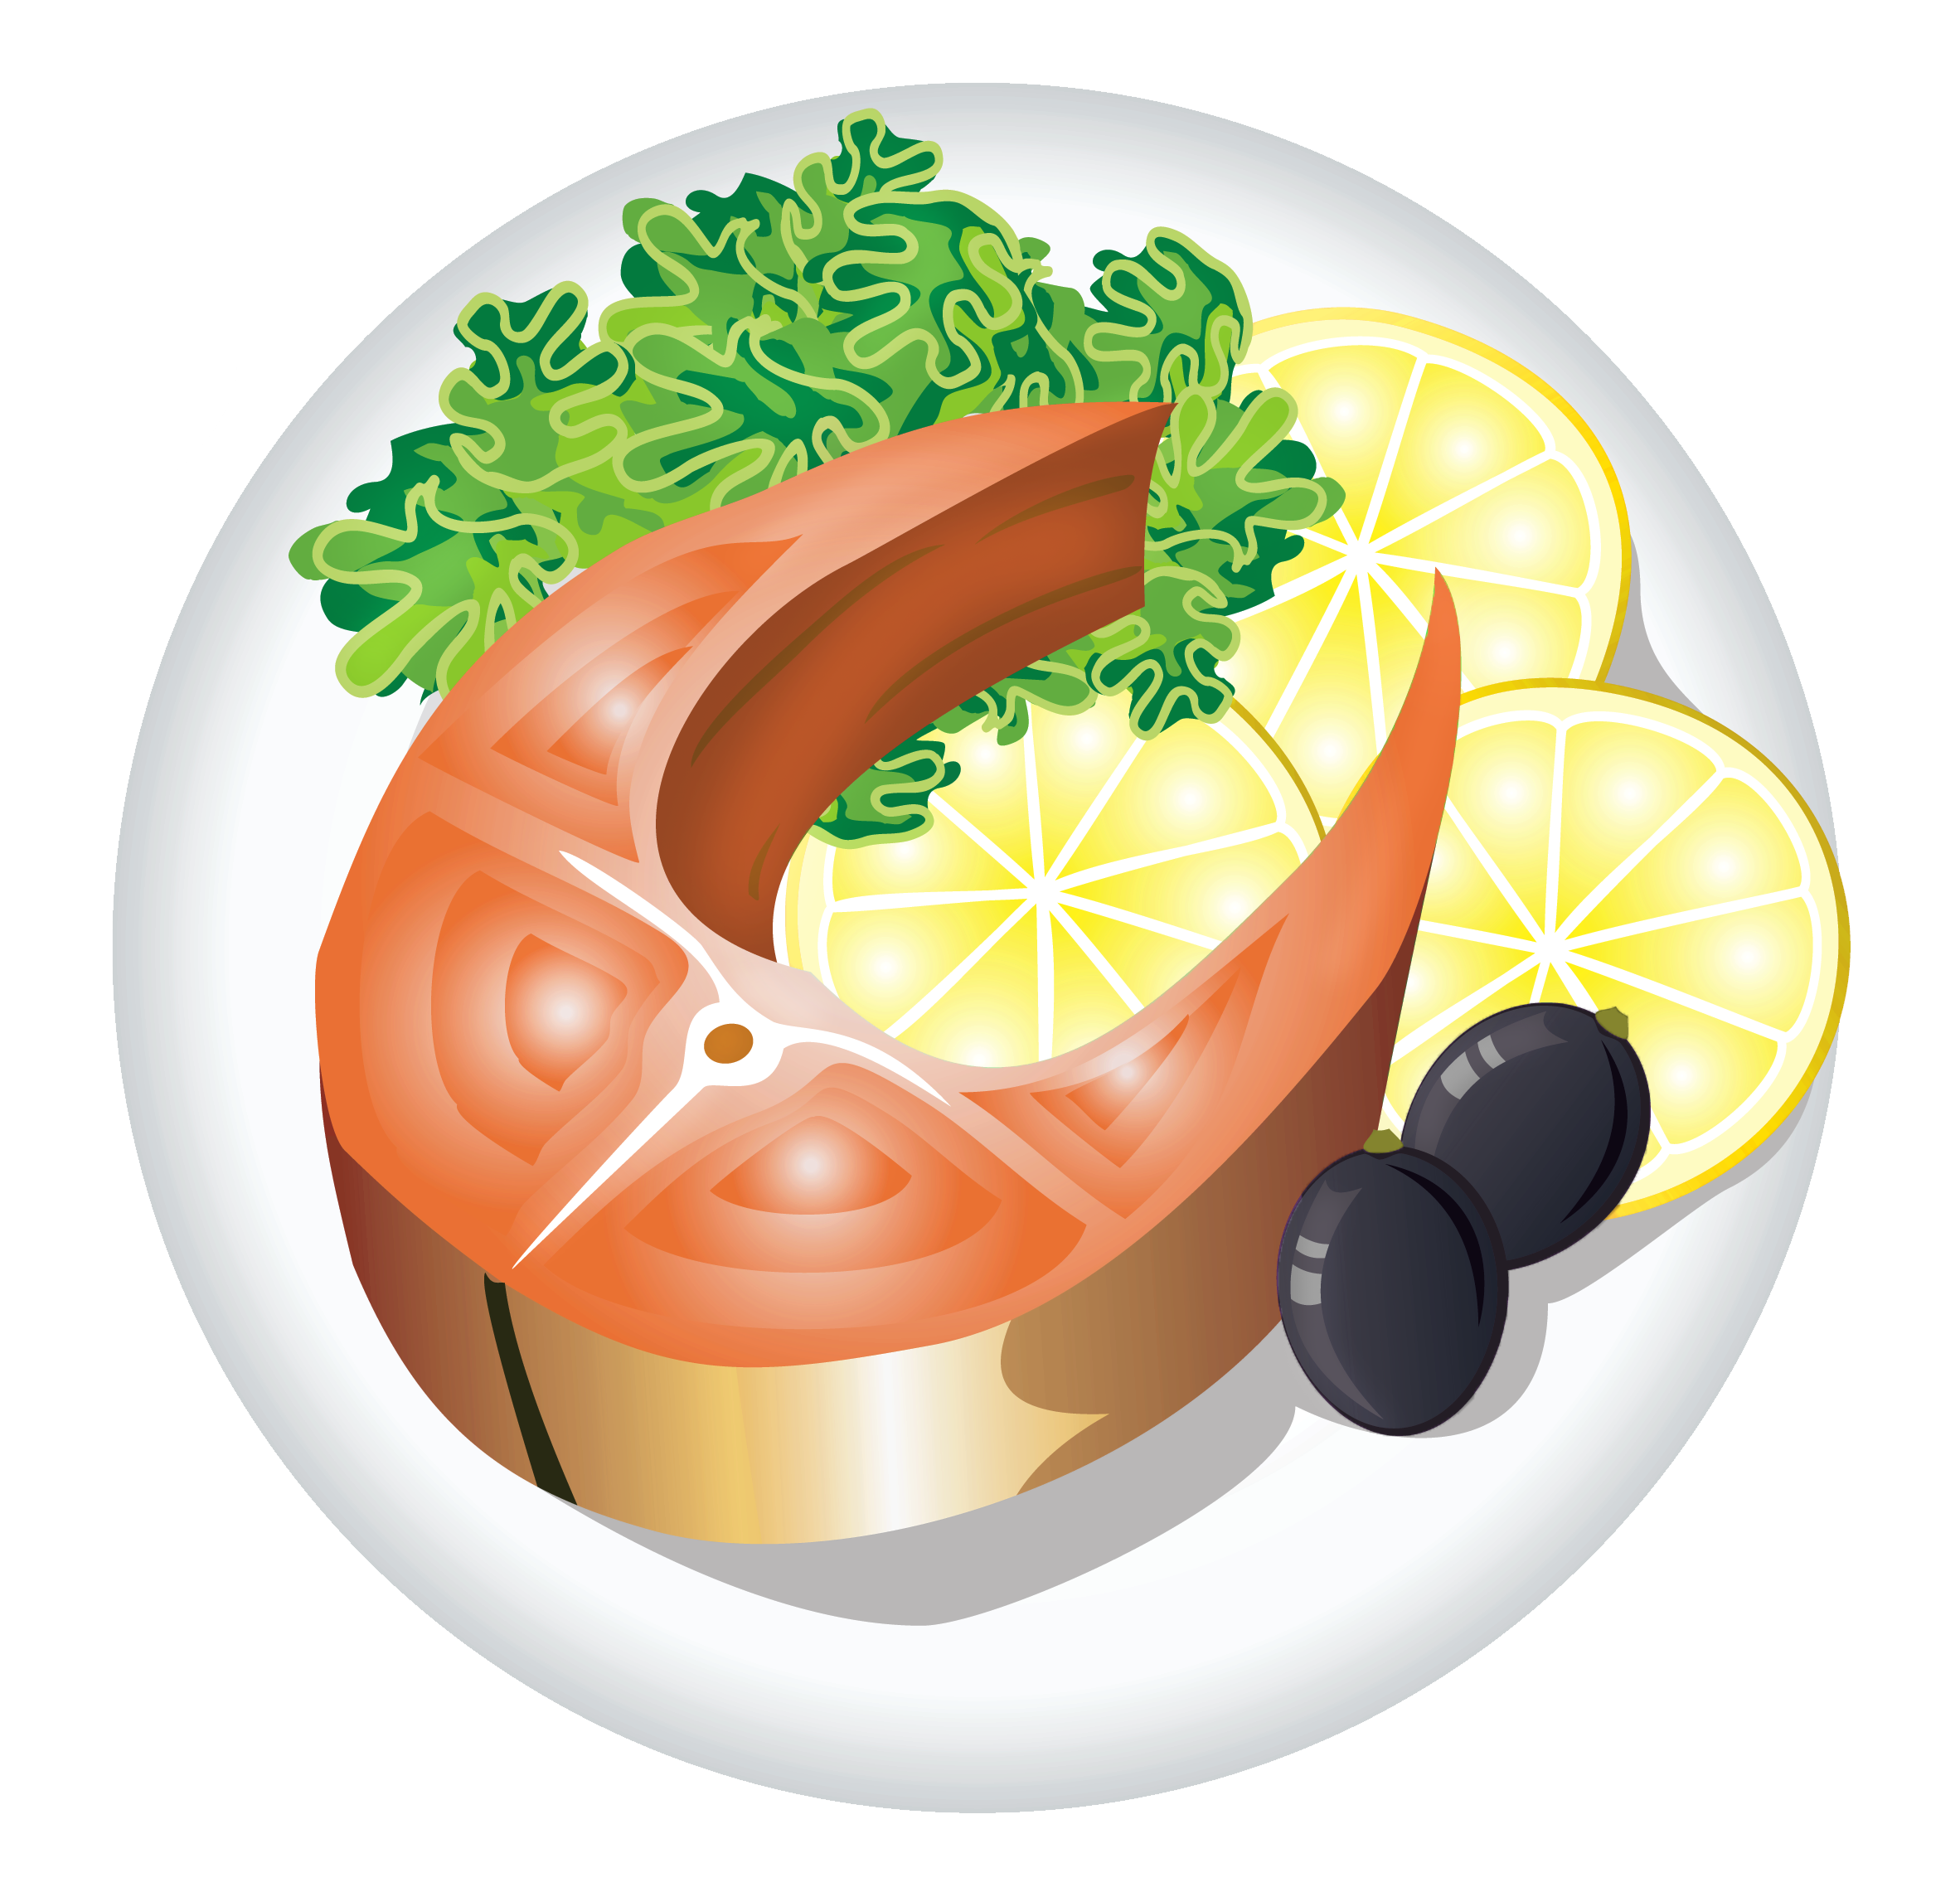 Dish clipart. Fish with lemon png